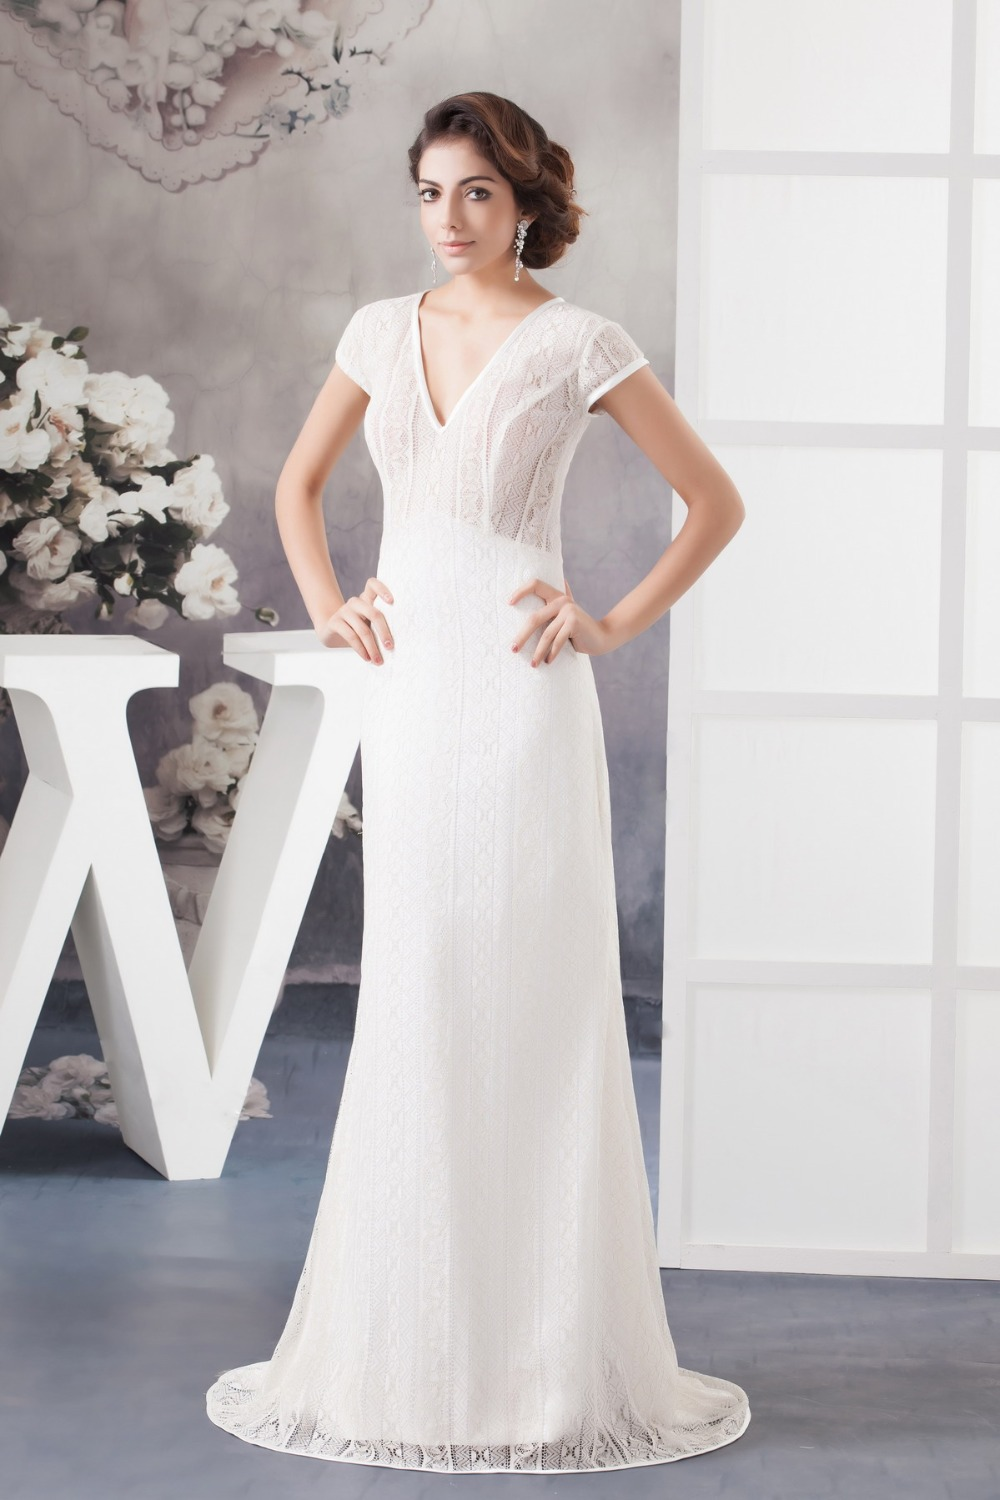 Wedding dresses for older brides cocktail dresses 2016 for Short sheath wedding dress